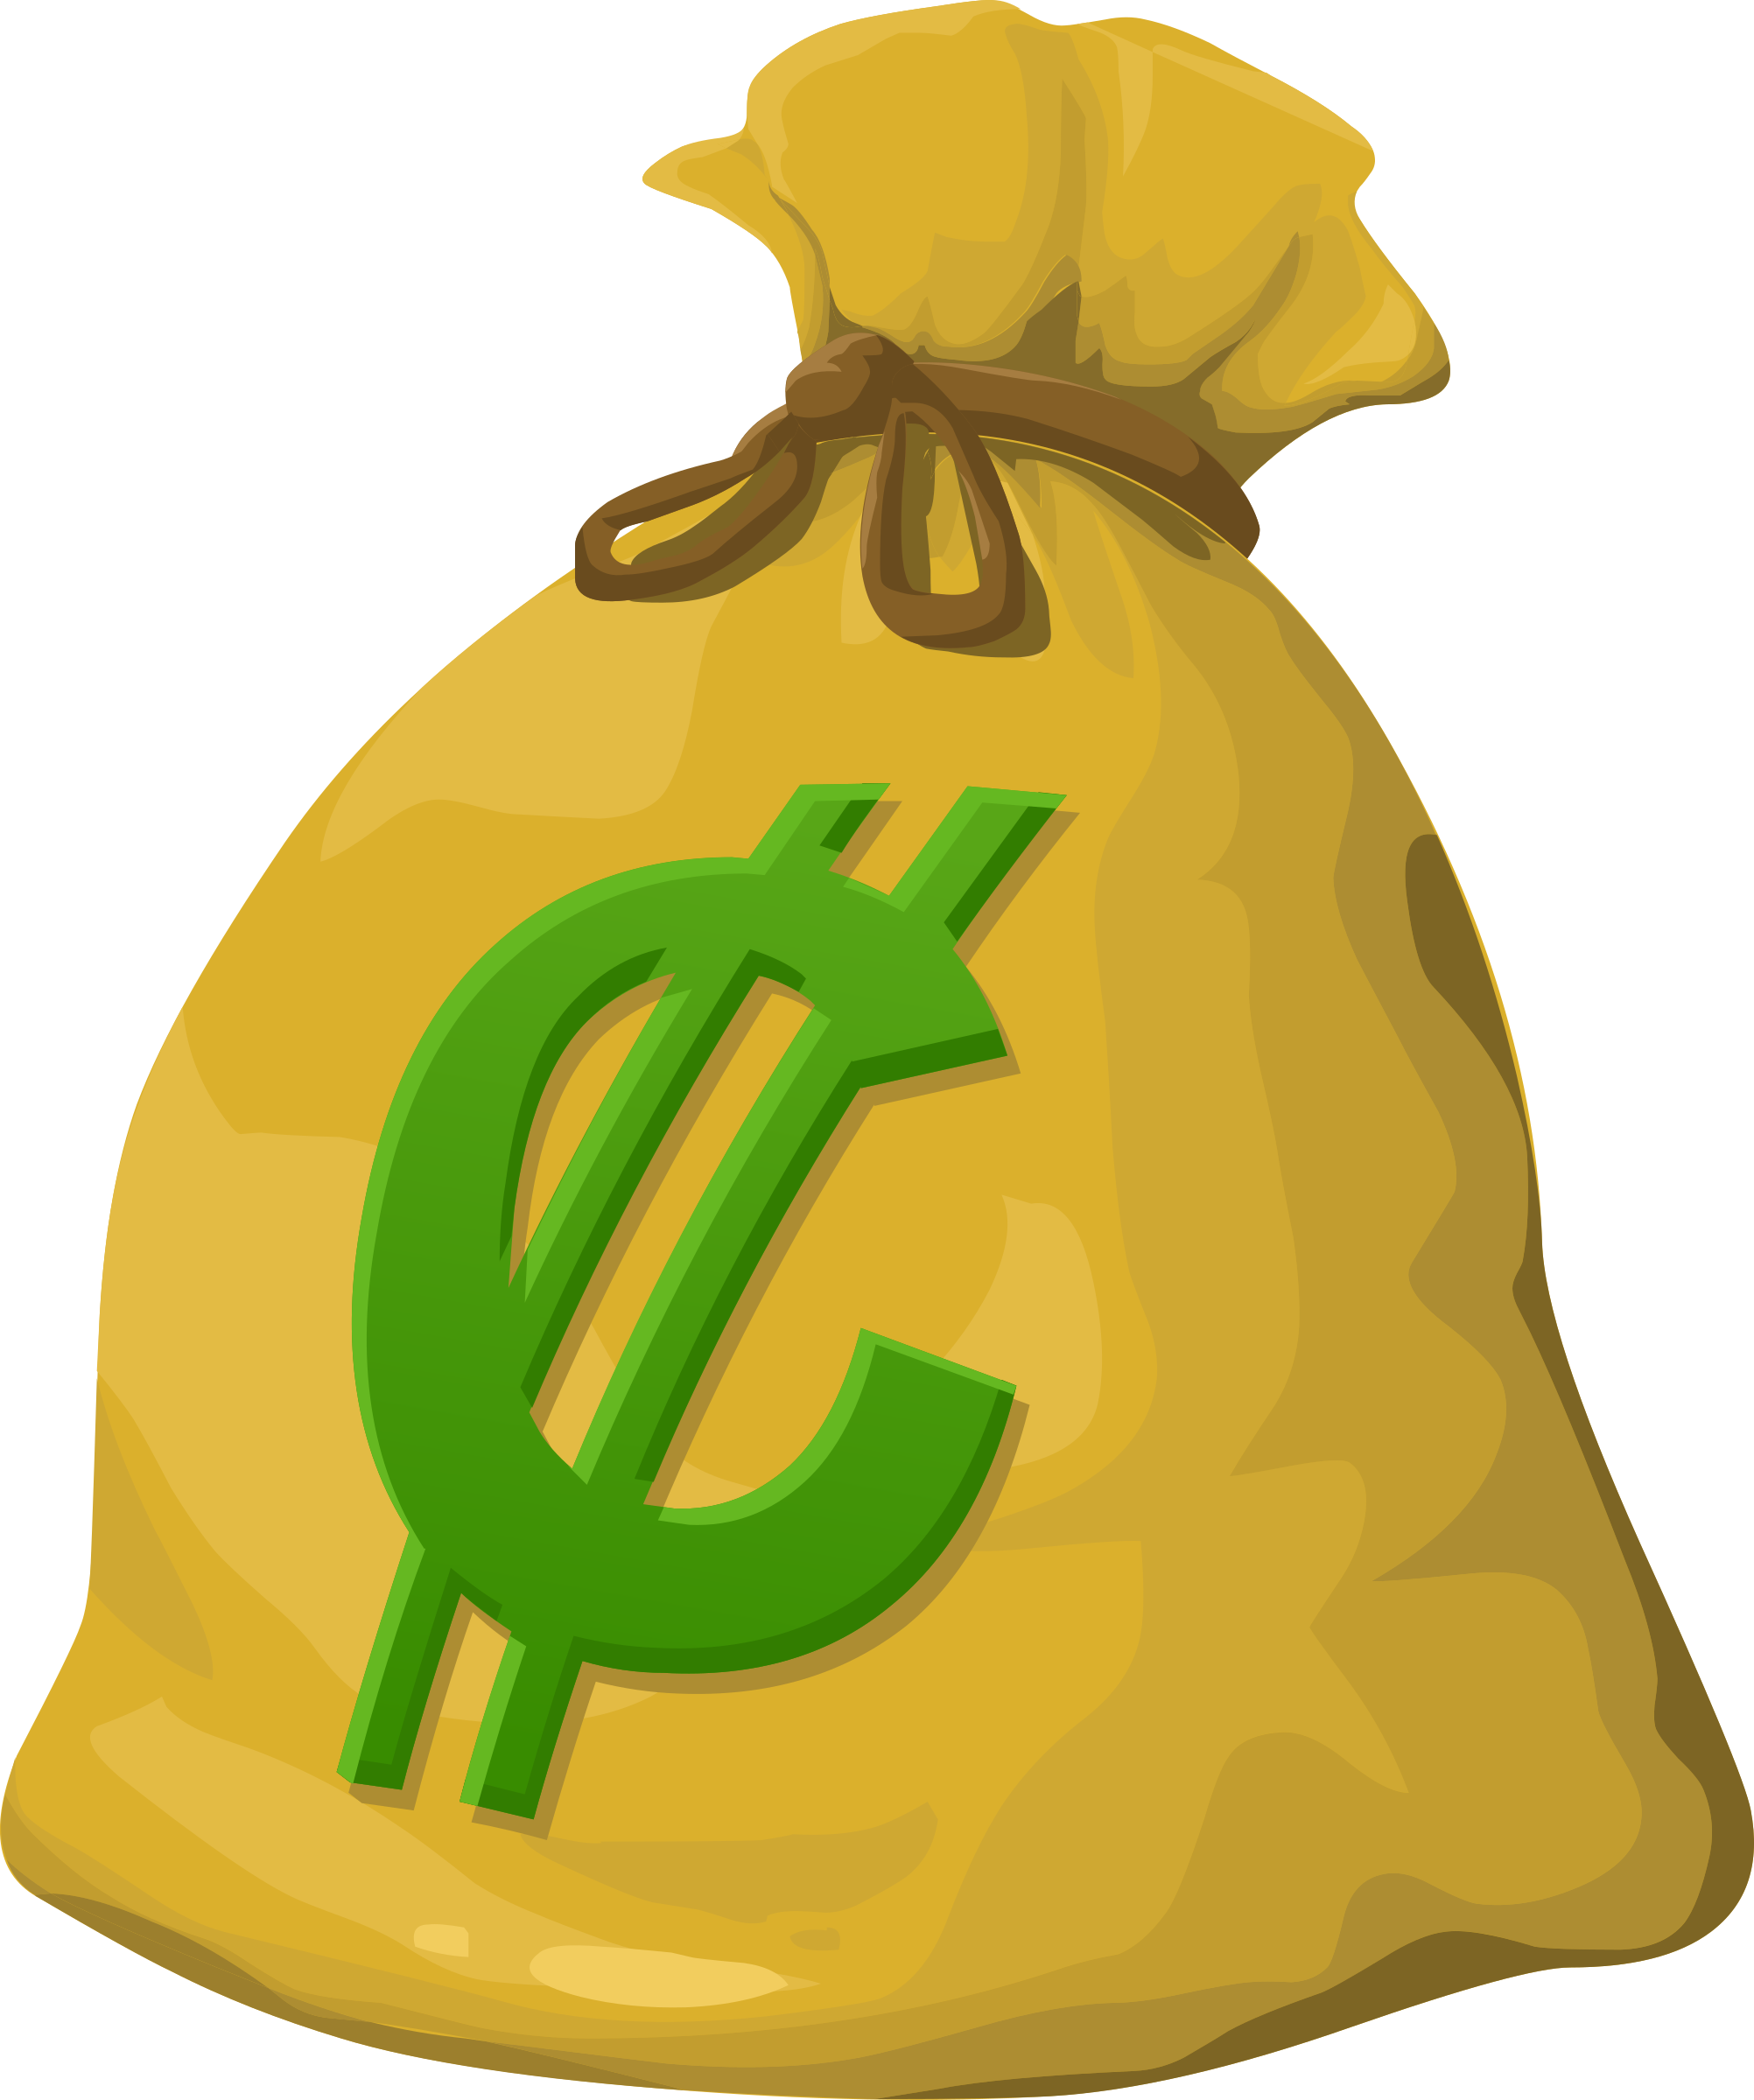 ➡➡ Money Bag Clip Art Images Free Download png free